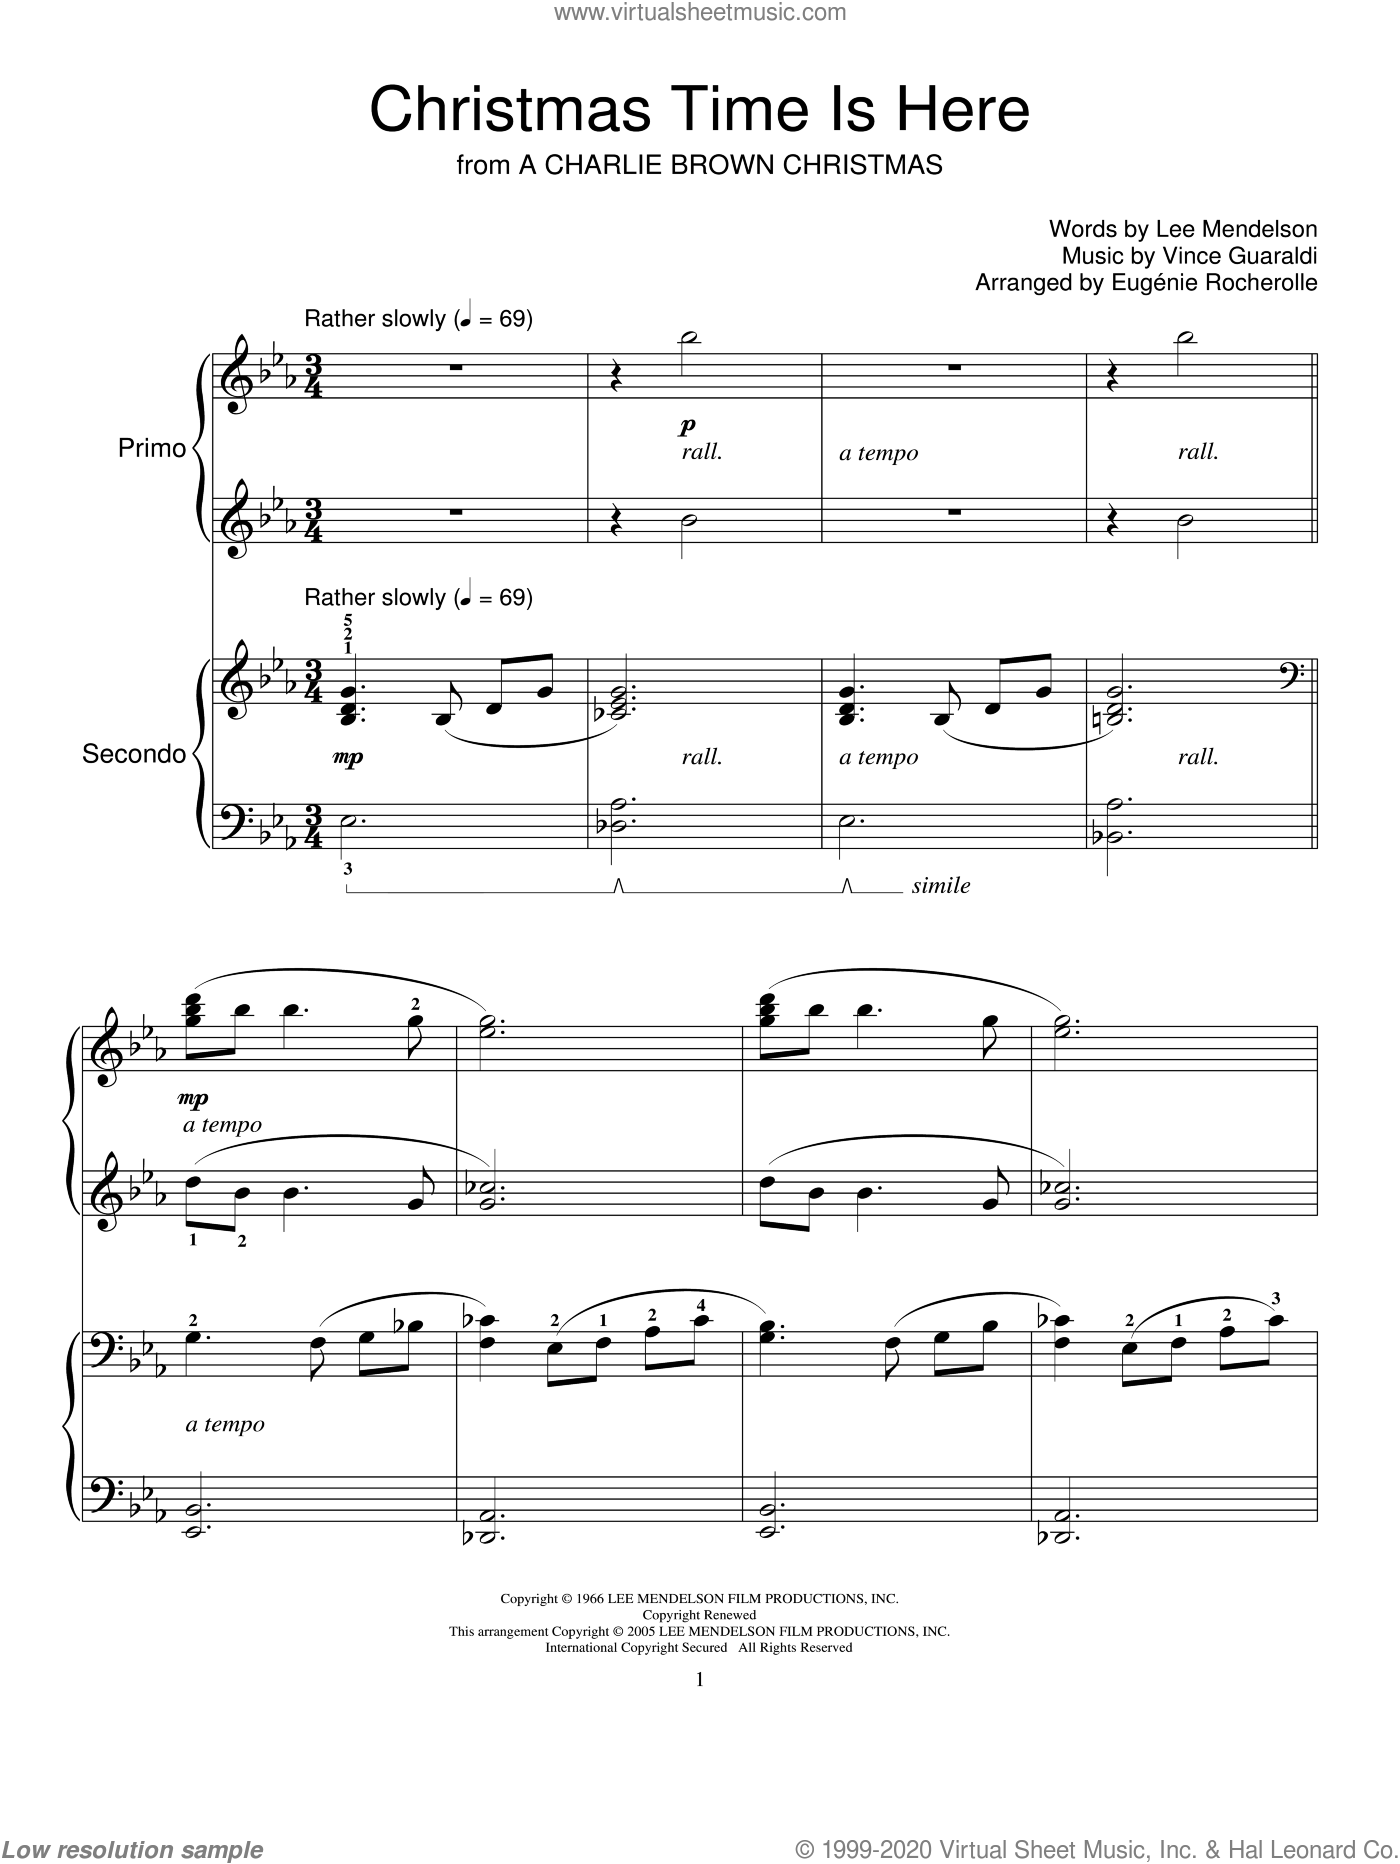 Christmas Time Is Here sheet music for piano four hands (duets) by Lee Mendelson